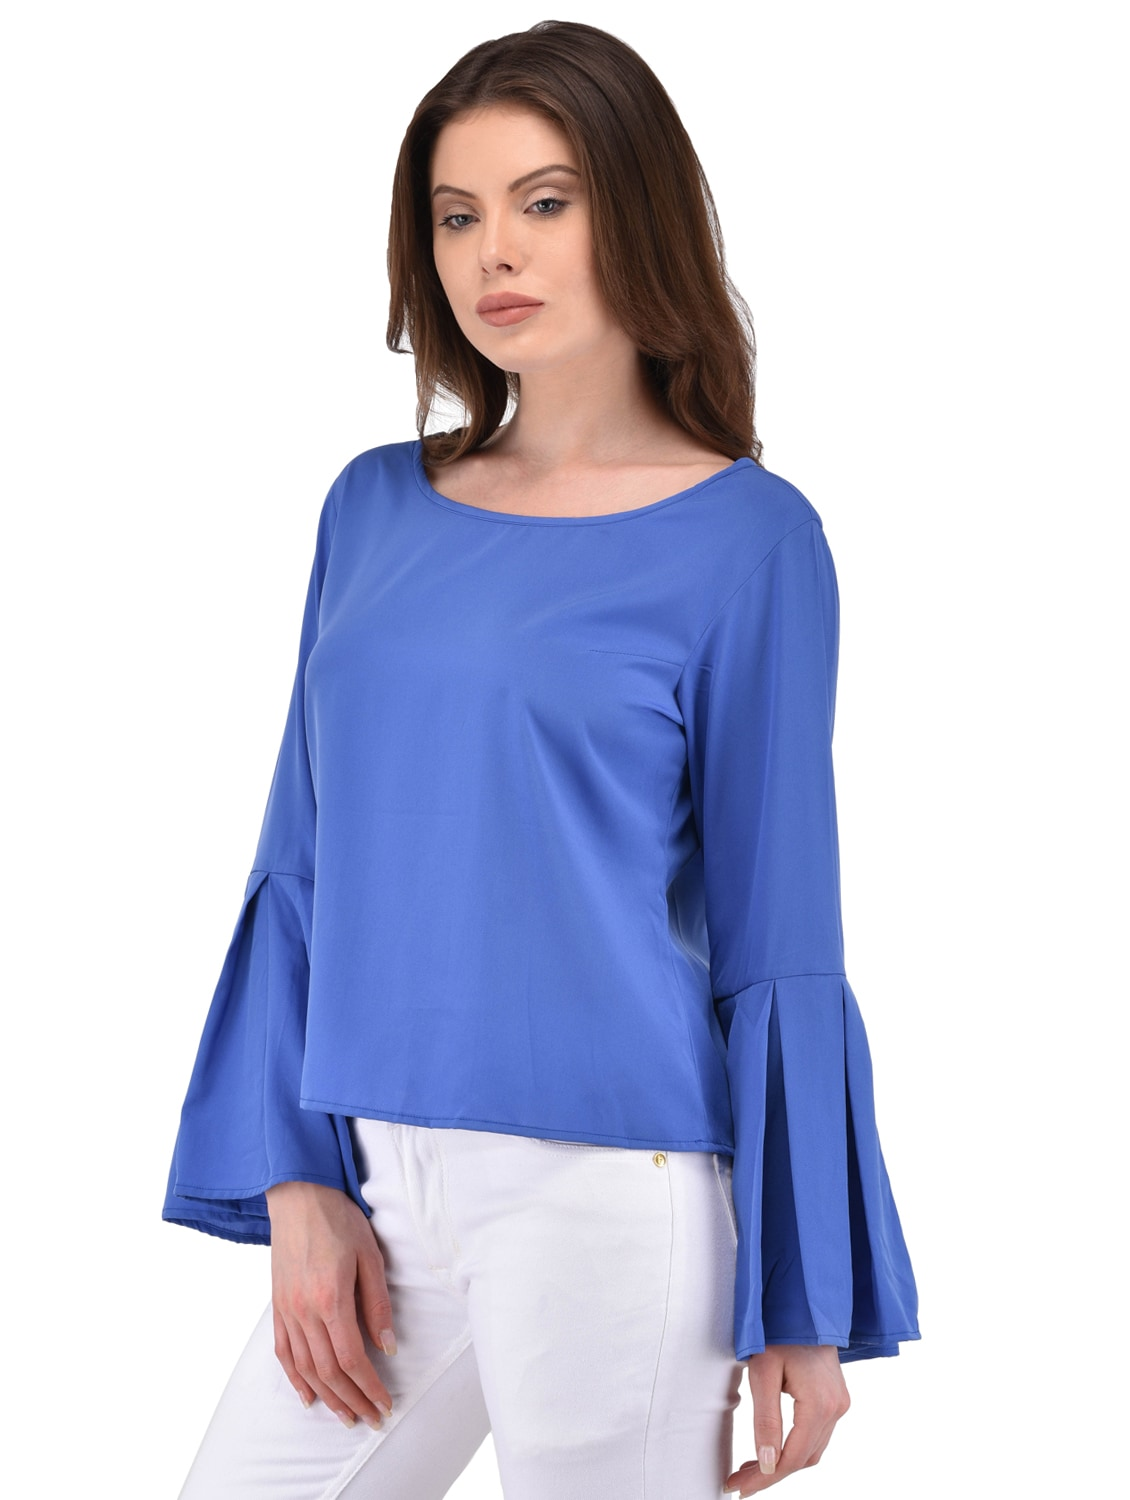 017478791747cd Buy Pleated Bell Sleeve Cobalt Blue Top for Women from Berrypeckers for  ₹630 at 50% off   2019 Limeroad.com